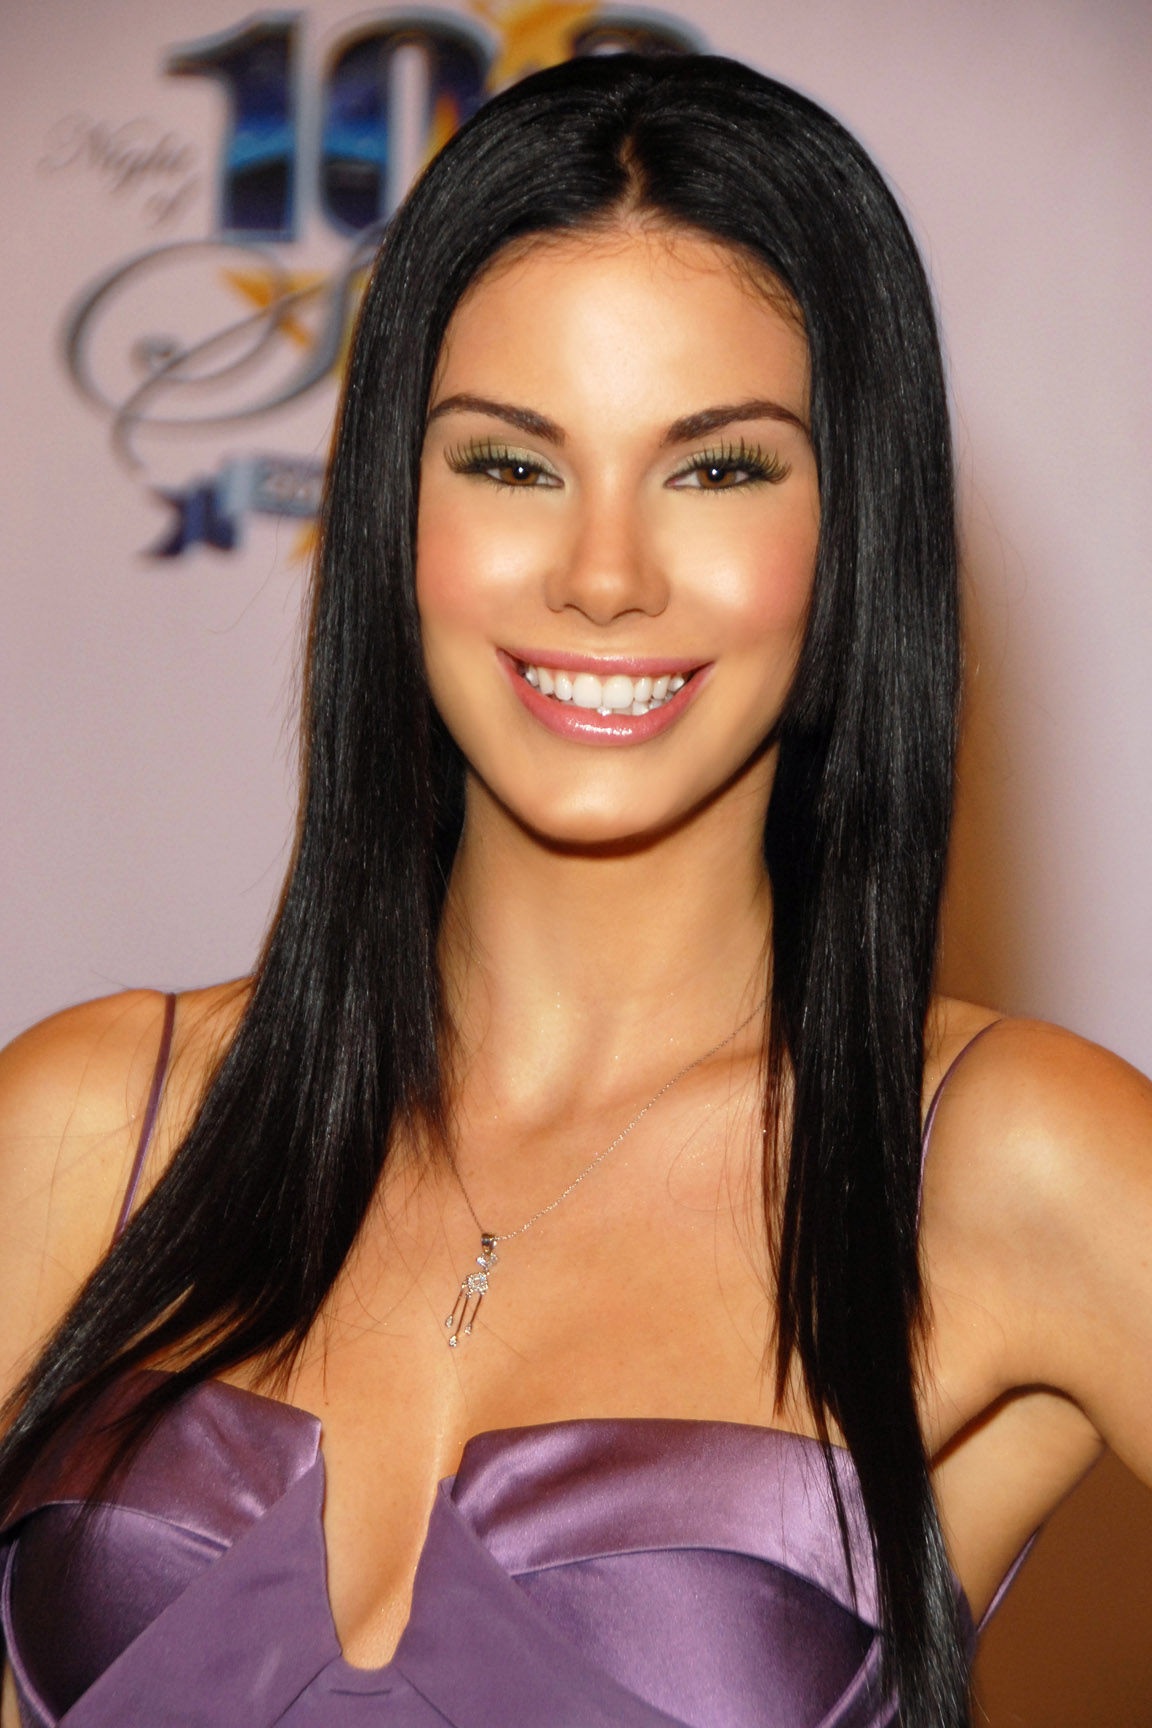 Photo of Jayde Nicole: Canadian model, Playboy's Playmate of the Month January 2007 and Playmate of the Year 2008